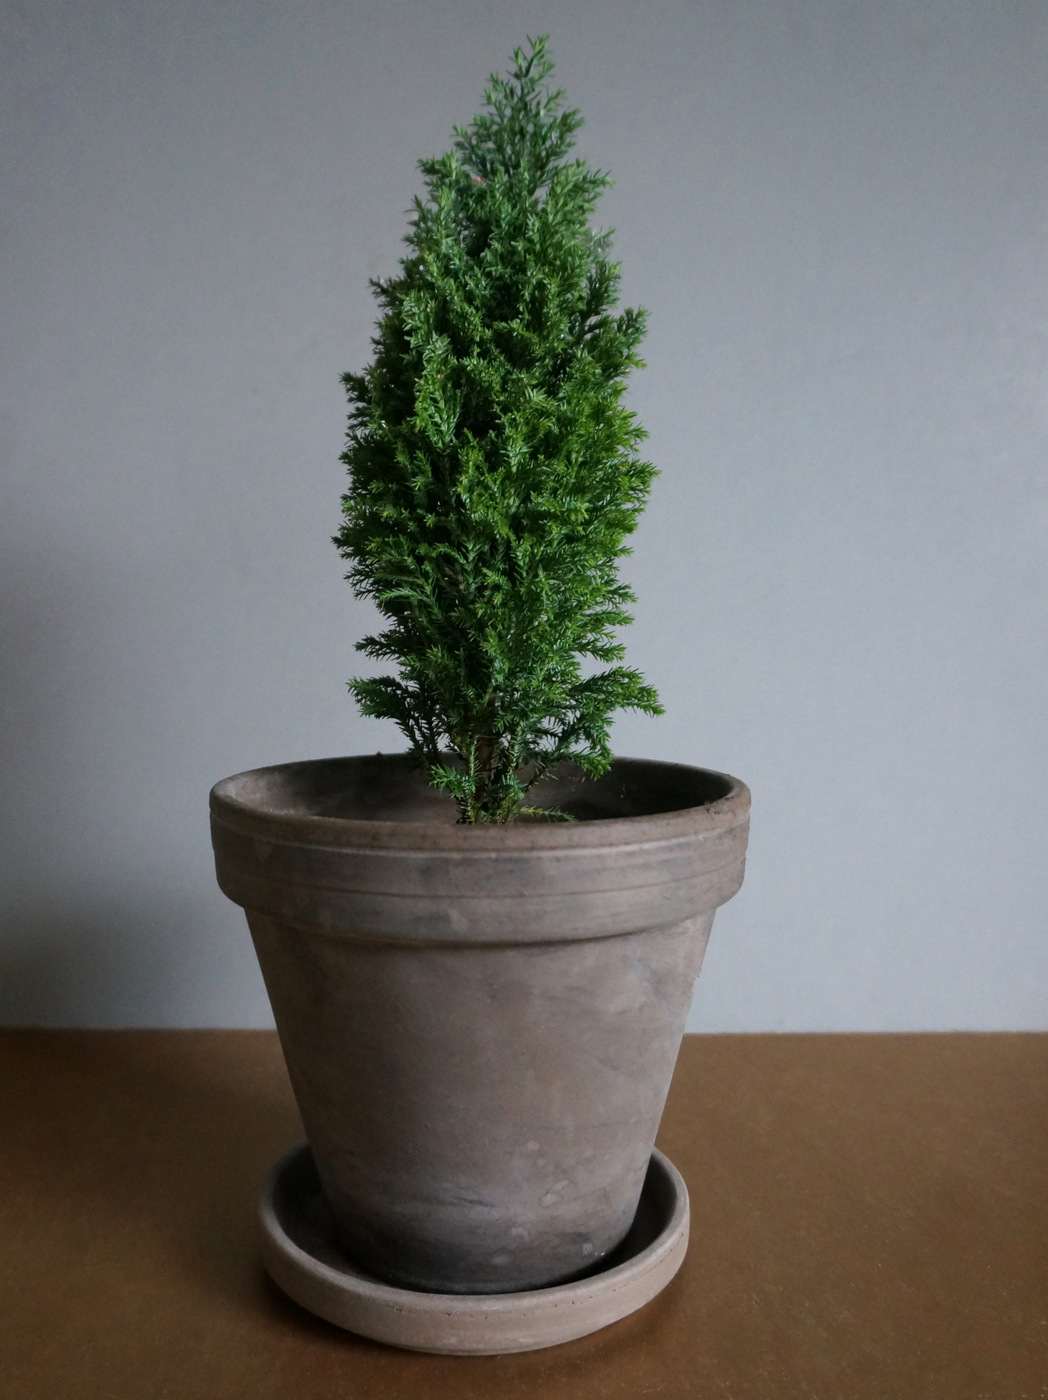 Potted holiday greenery